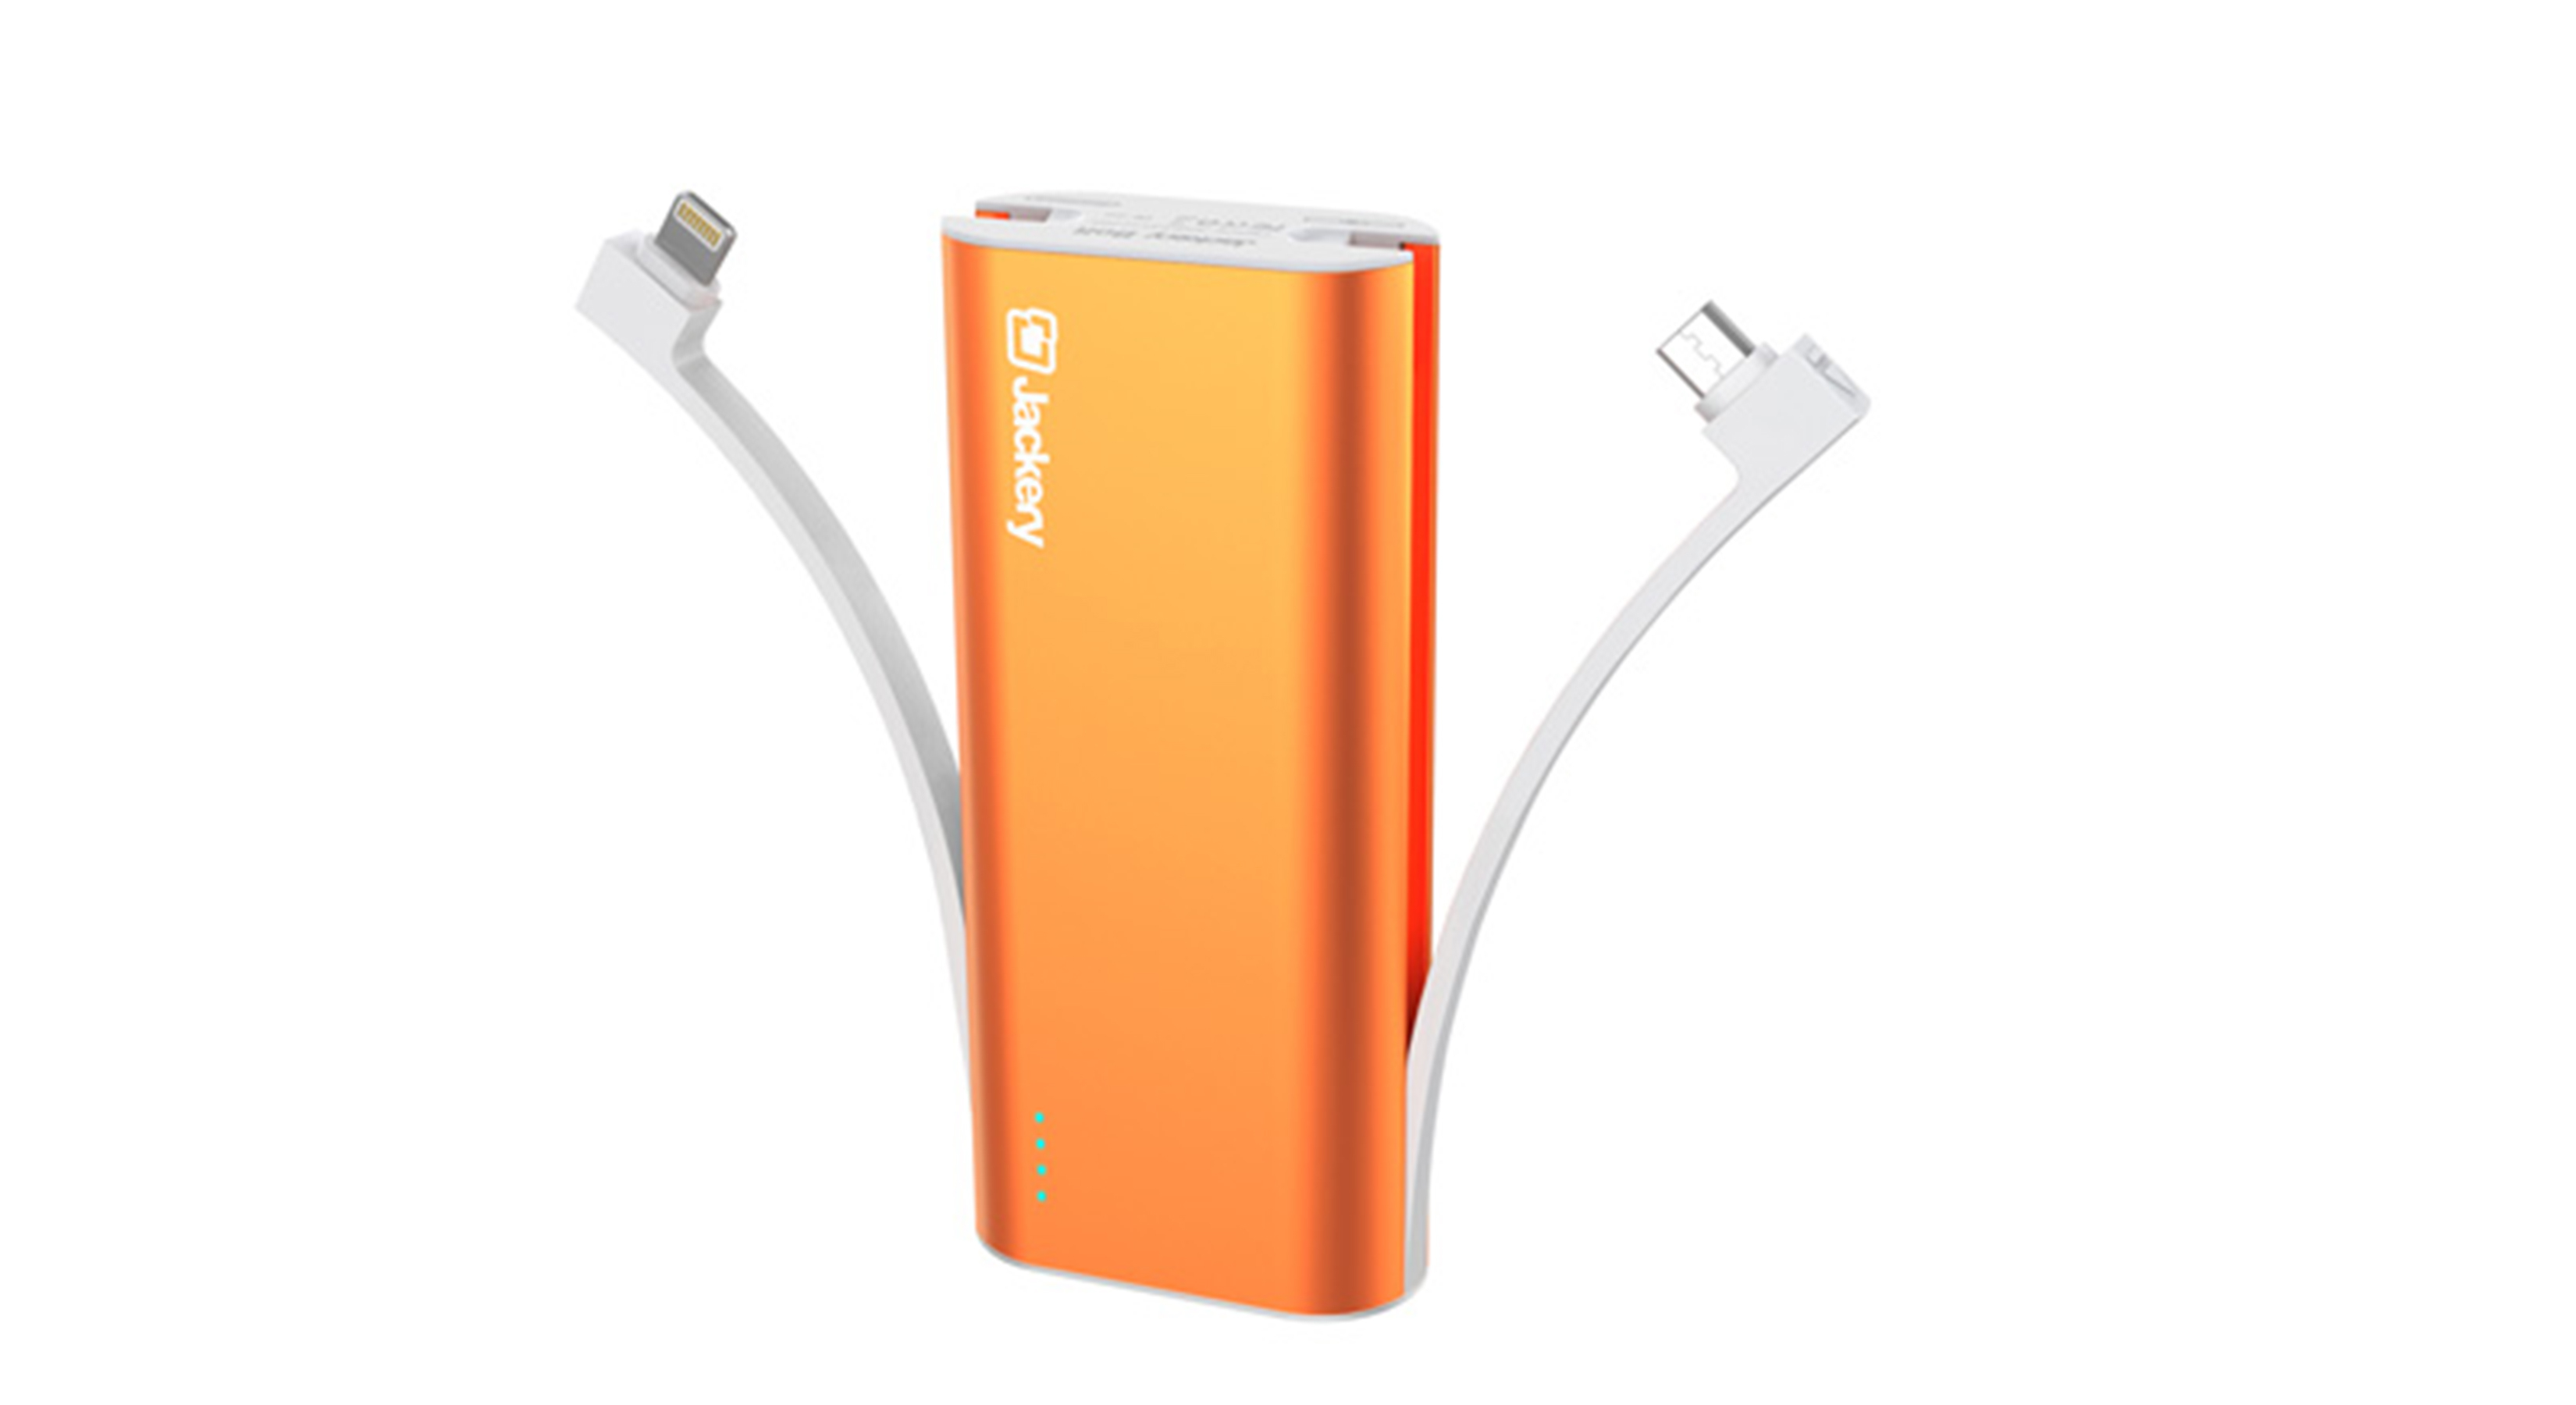 Jackery-Bolt-Orange0PowerBank.JPG?mtime=20180703150020#asset:102327